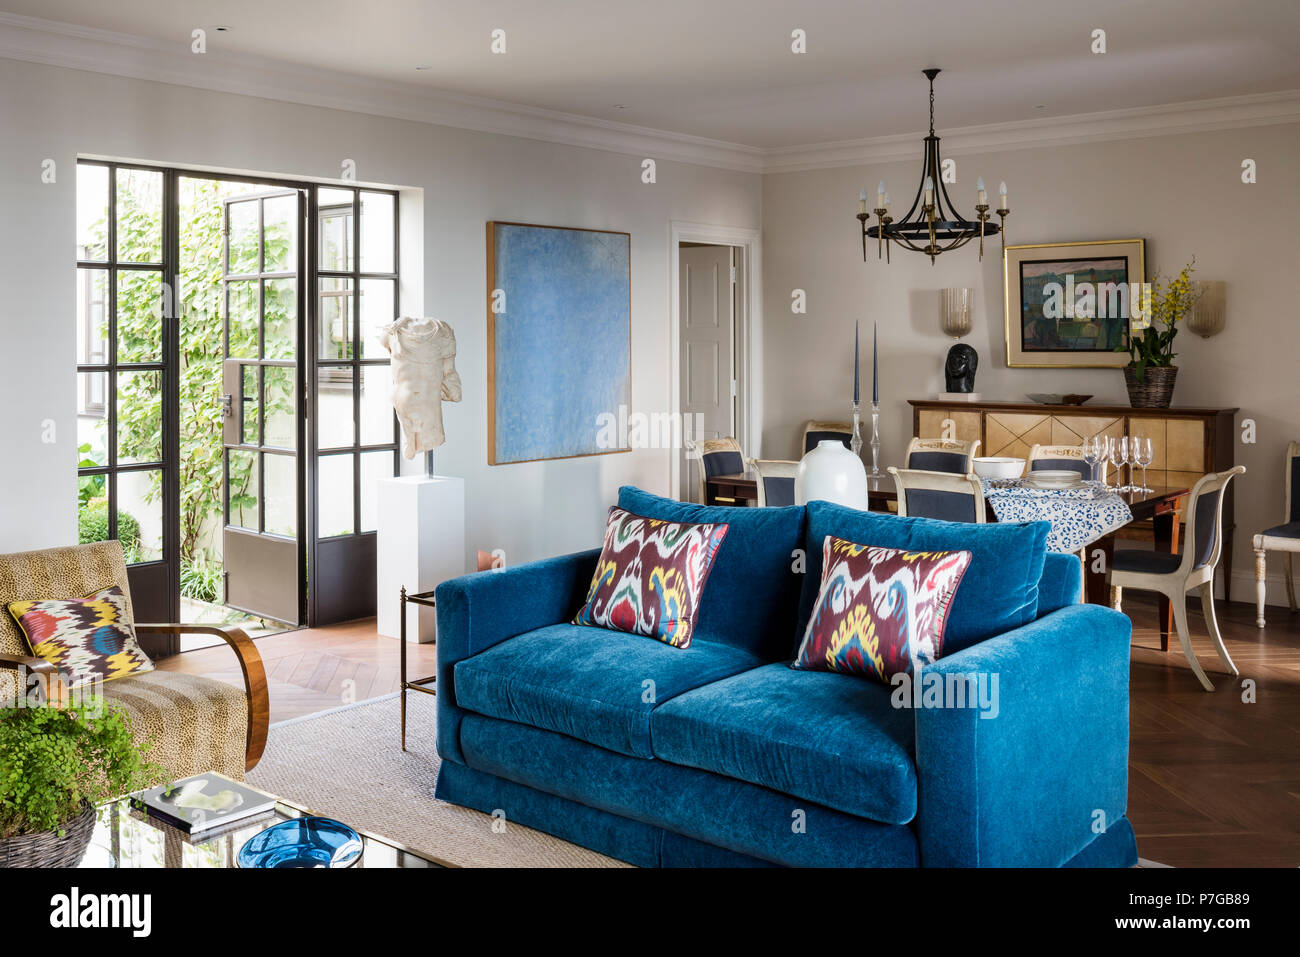 Blue sofa in country style living room Stock Photo: 211187097 - Alamy